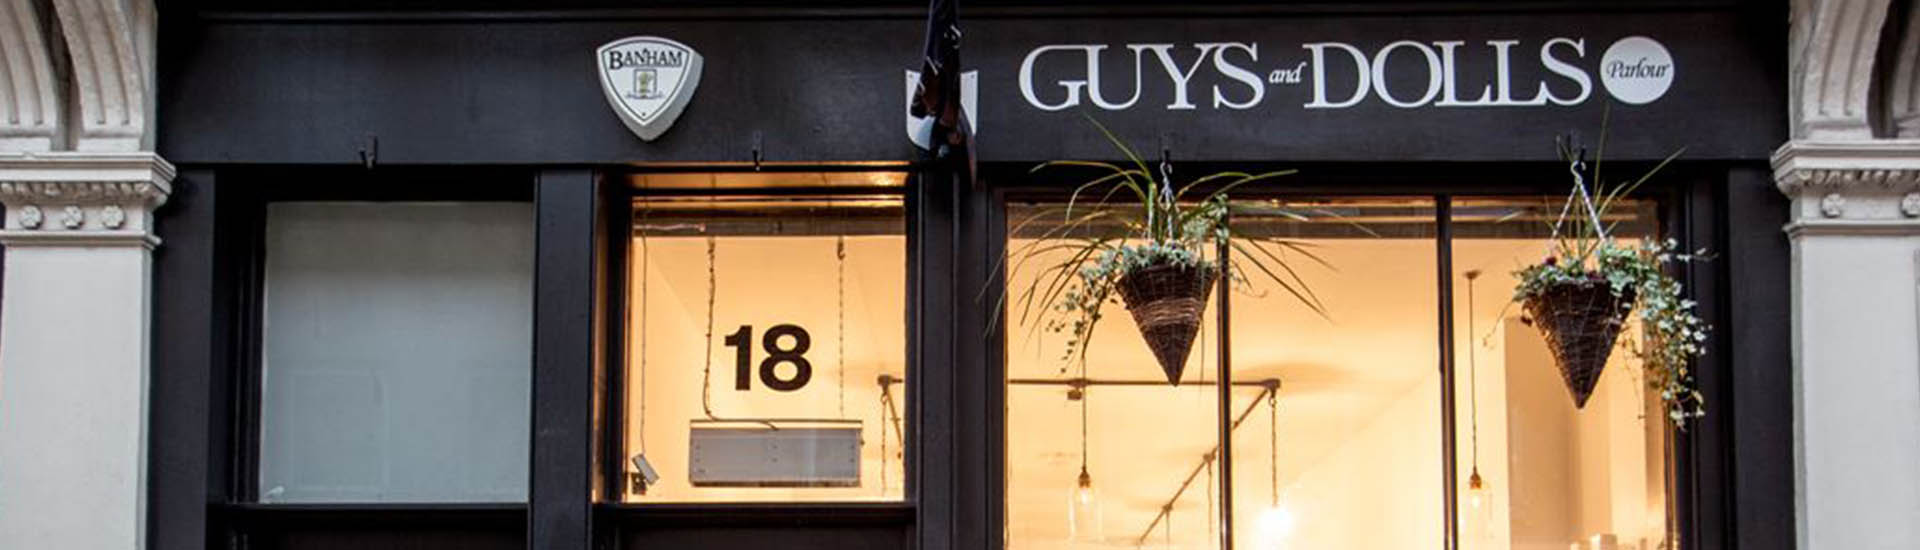 The Beauty Review: Guys and Dolls Parlour, Shoreditch, London